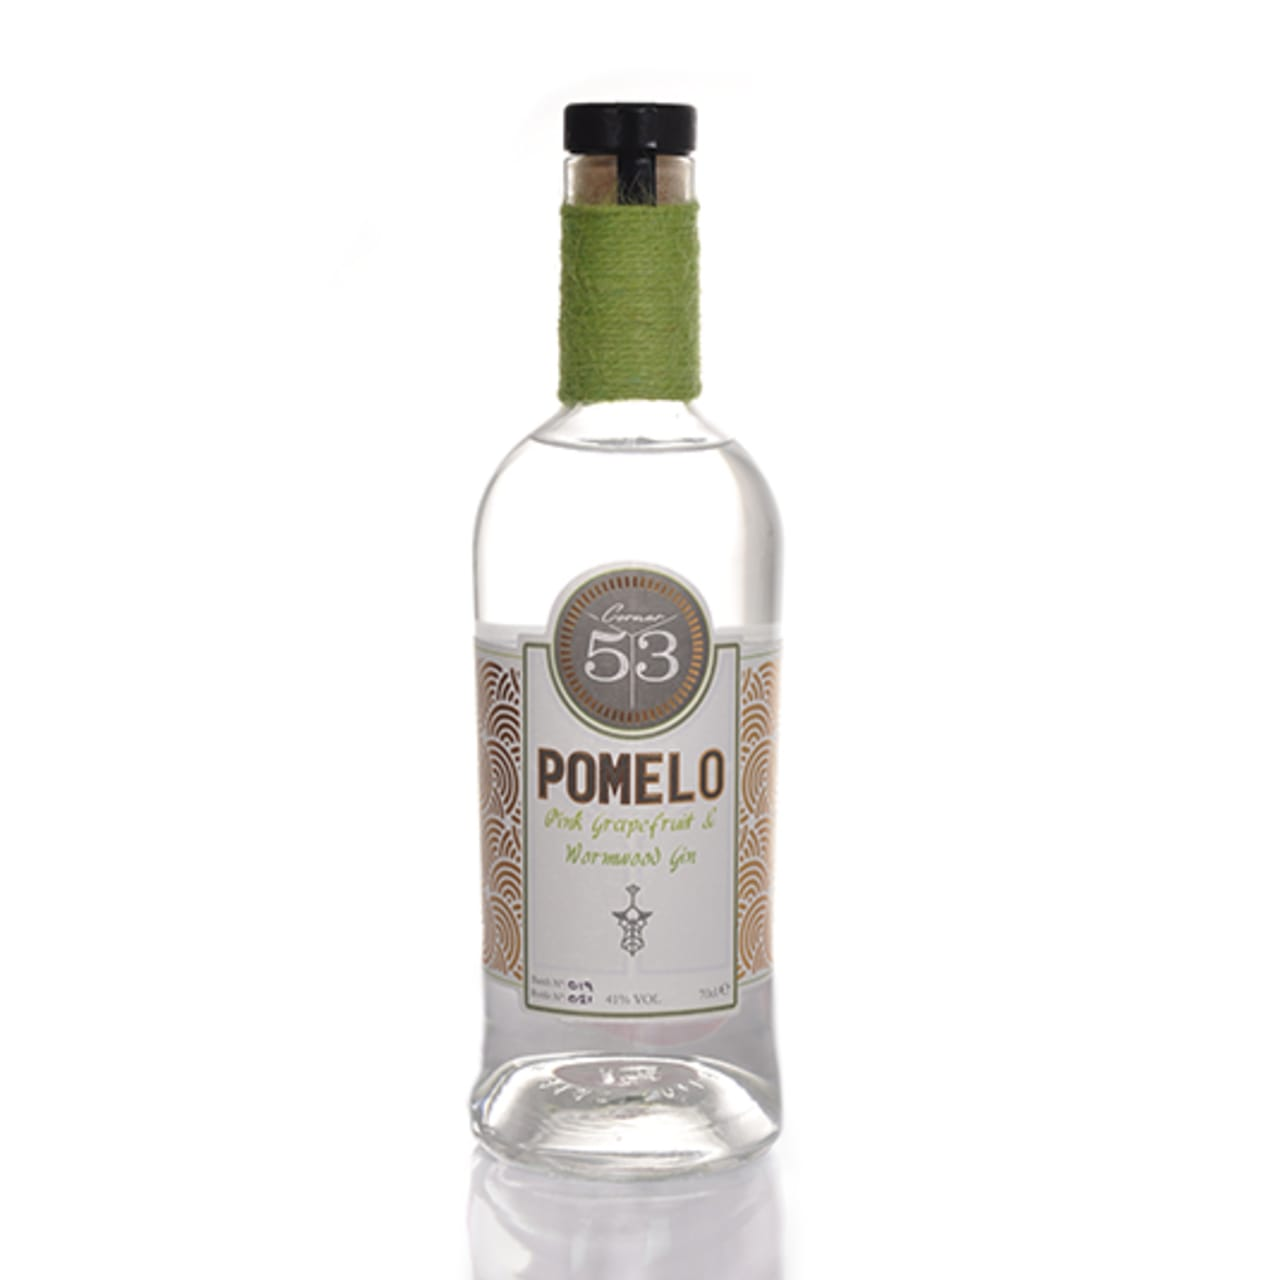 Product Image - Corner 53 Pomelo Gin